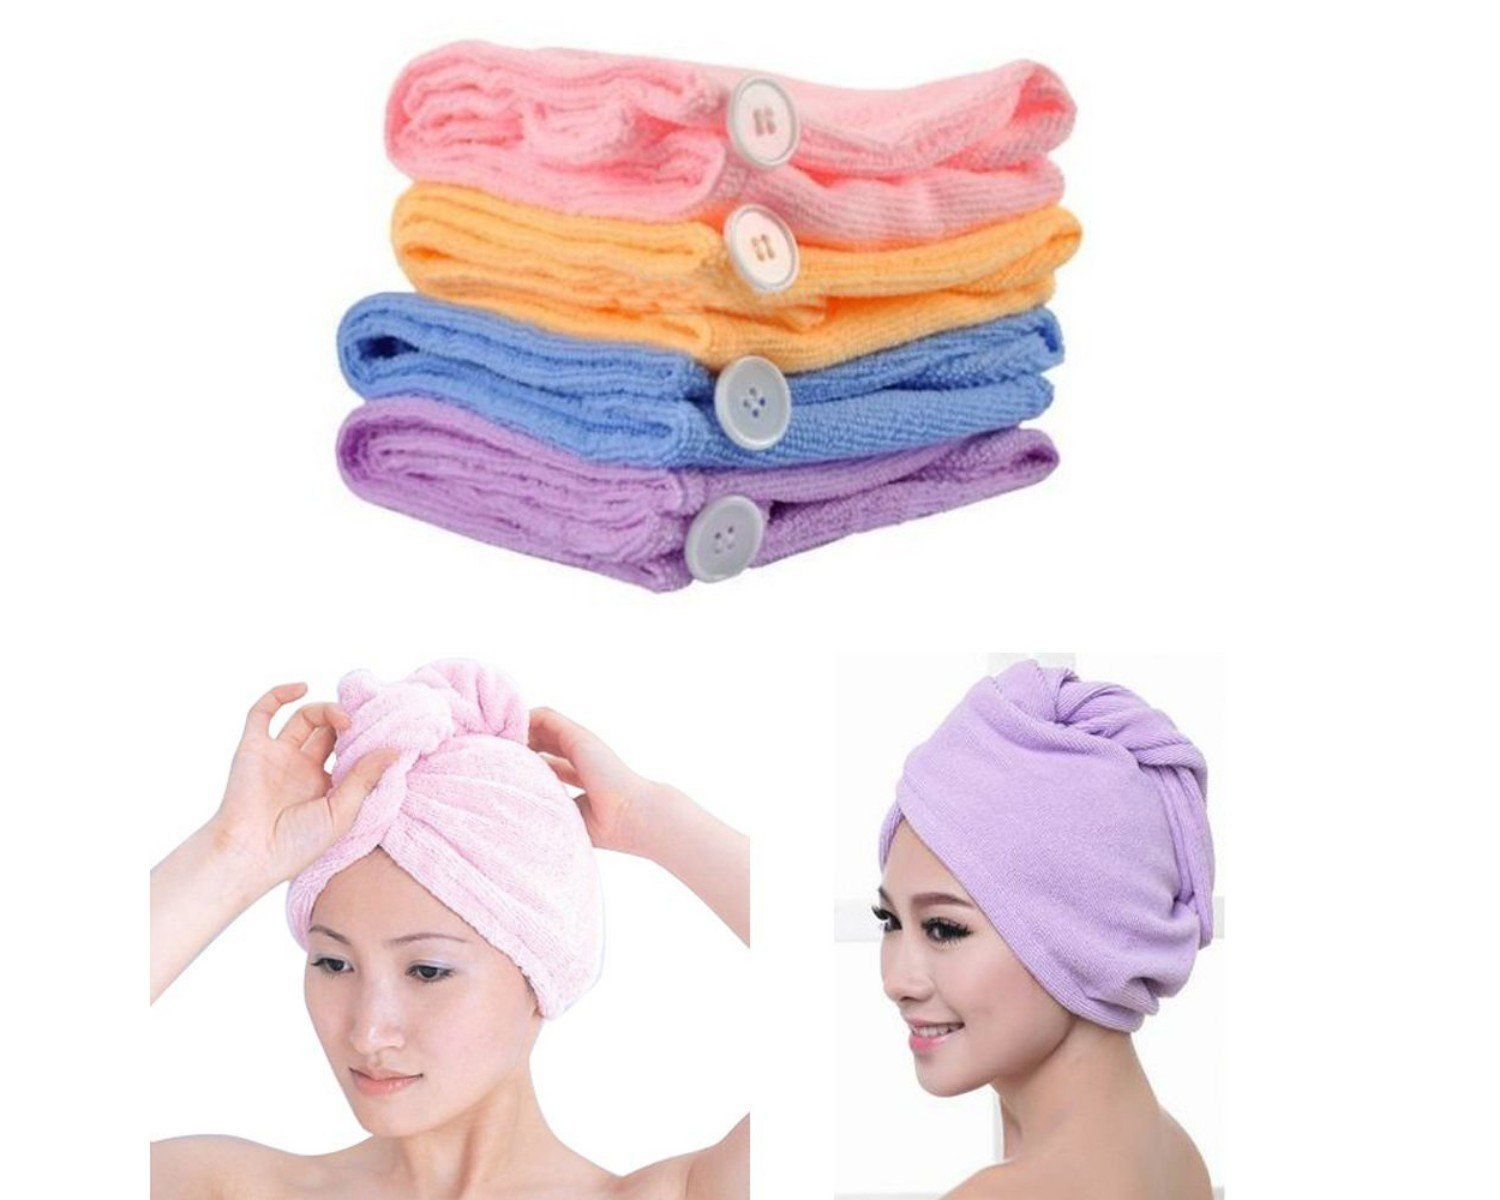 Towel Me Wrapping O Fiber Hair Wrap Towel Pack Of 2 Hair Towel Wrap Hair Towel Dry Hair Fast